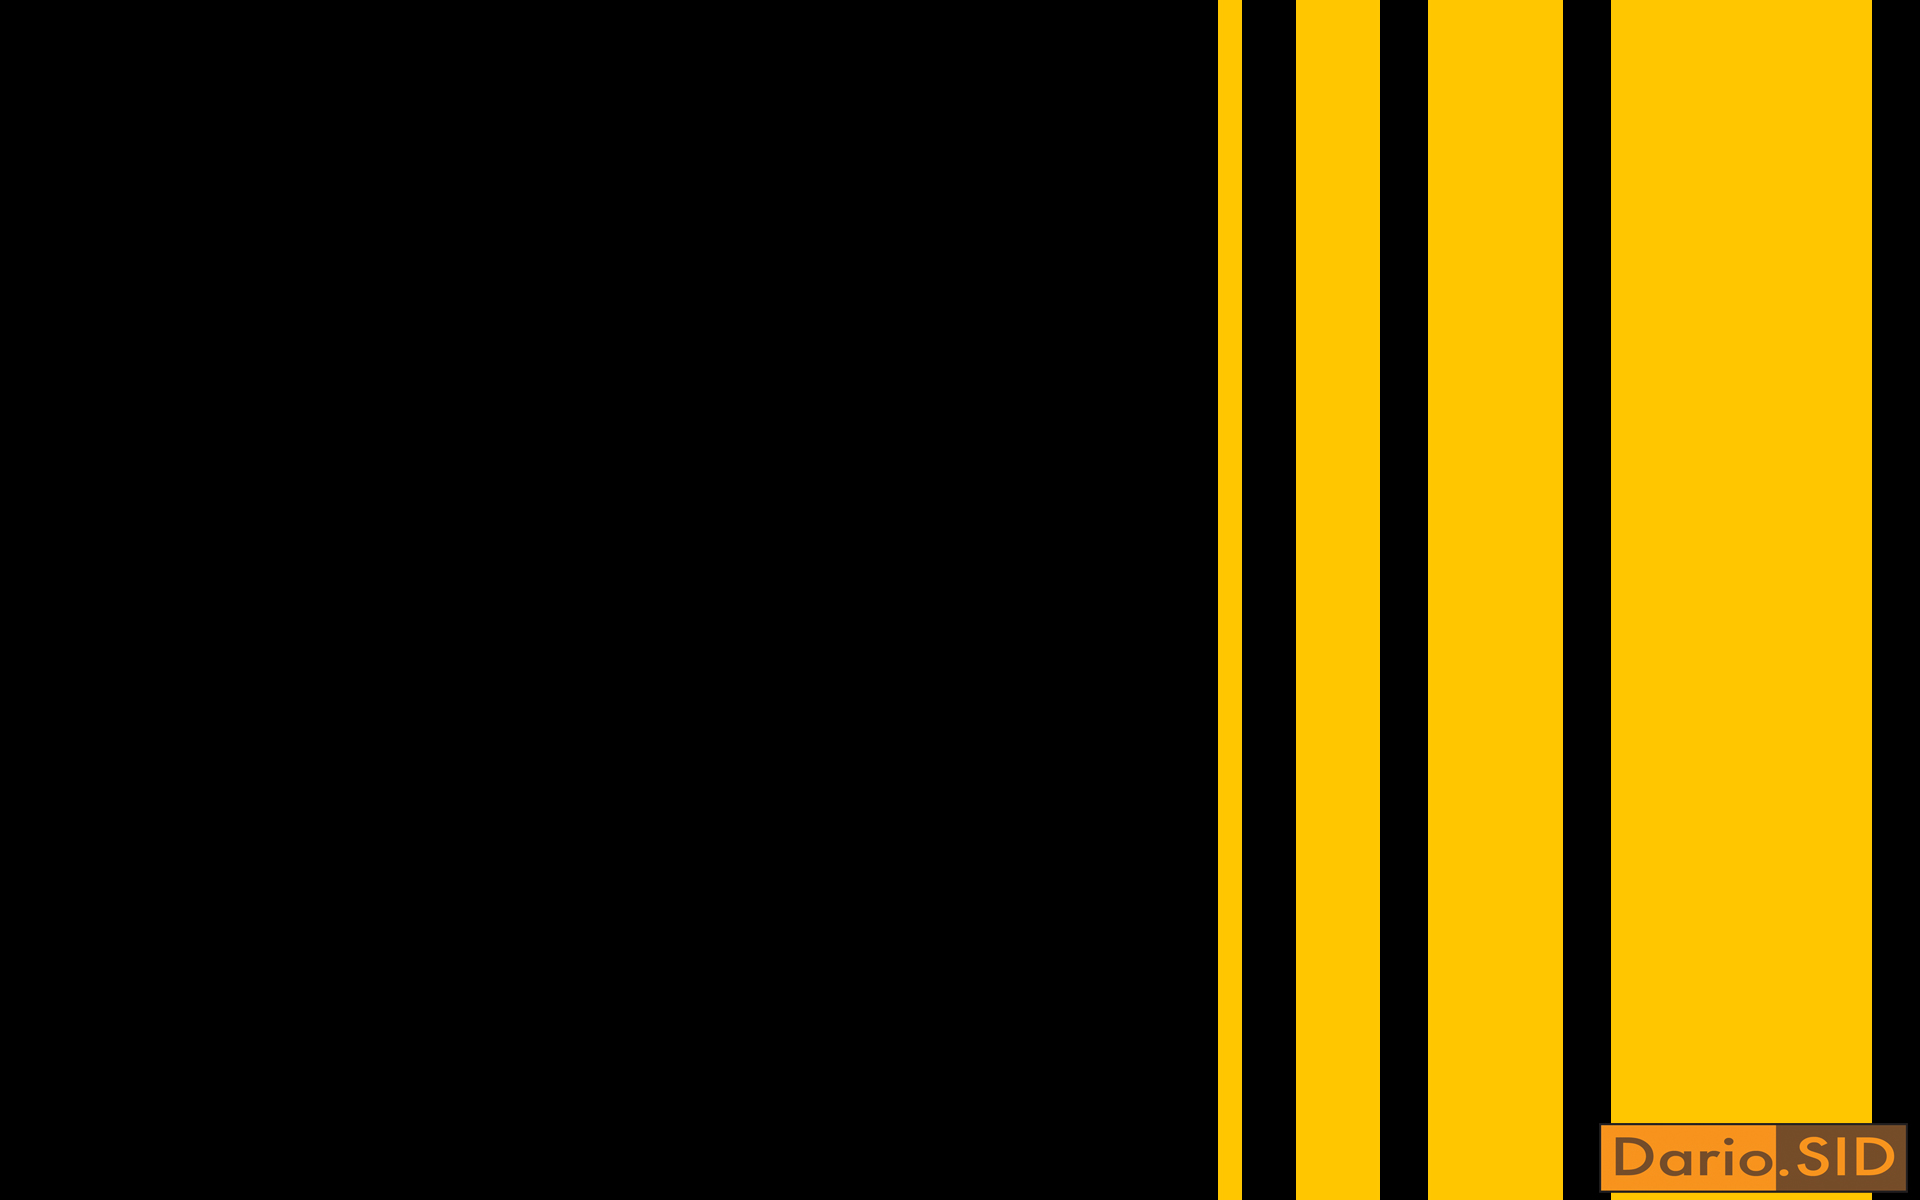 1920x1200 - Yellow and Black 36